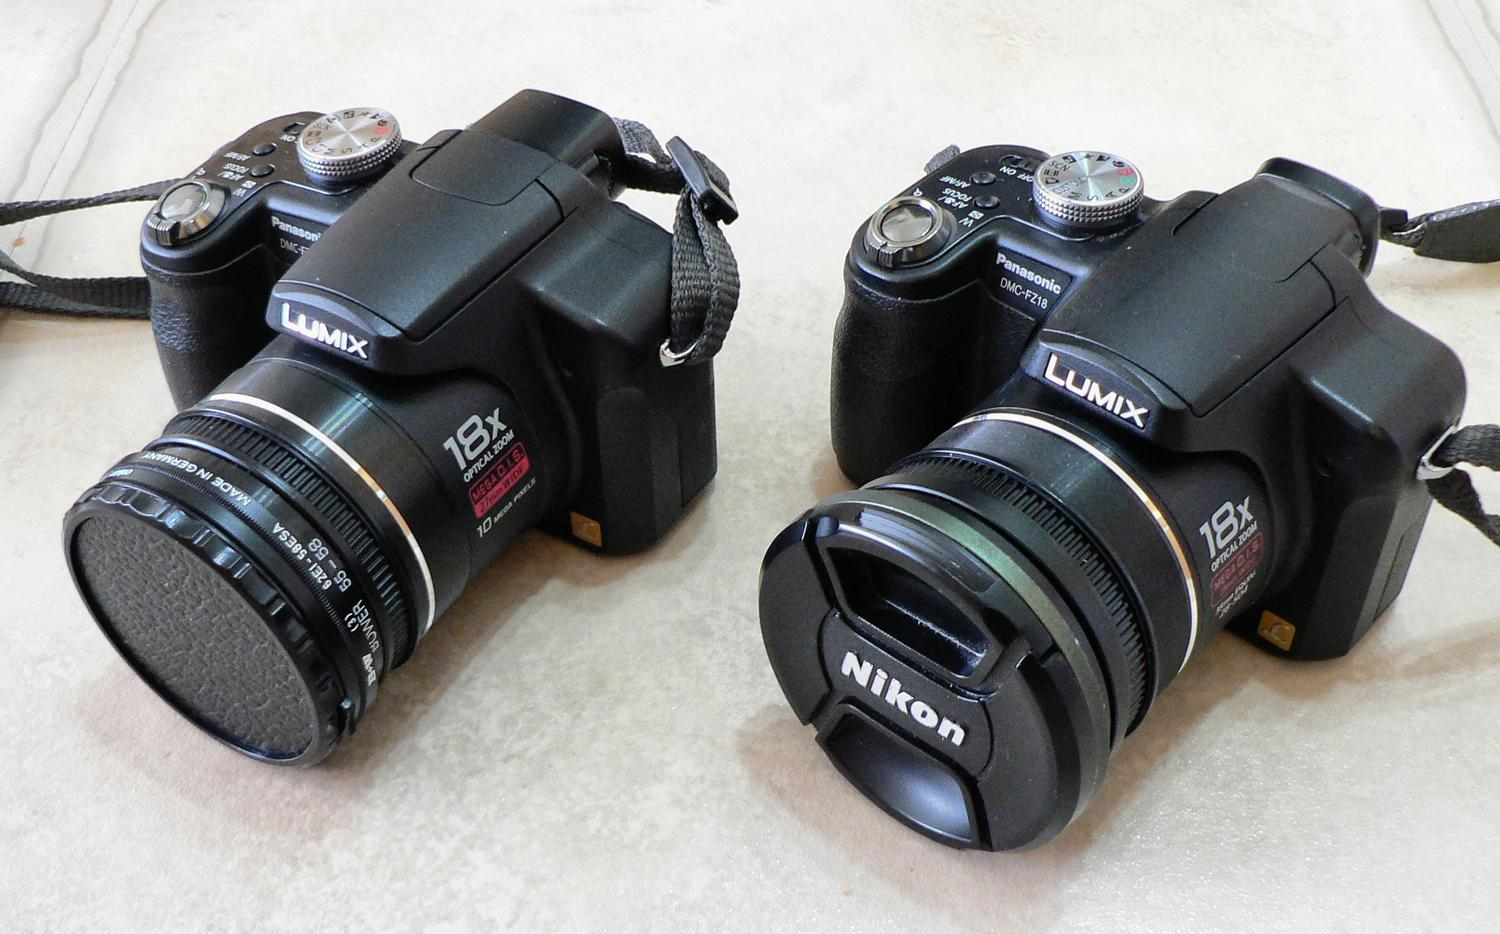 Mr. Inside and Mr. Outside, my Panasonic DMC-FZ28 and DMC-FZ18 - Mister Inside and Mister Outside - My DMC-FZ28 and DMC-FZ18 - Picture taken with my DMC-FZ5 - - art  - photography - by Tony Karp